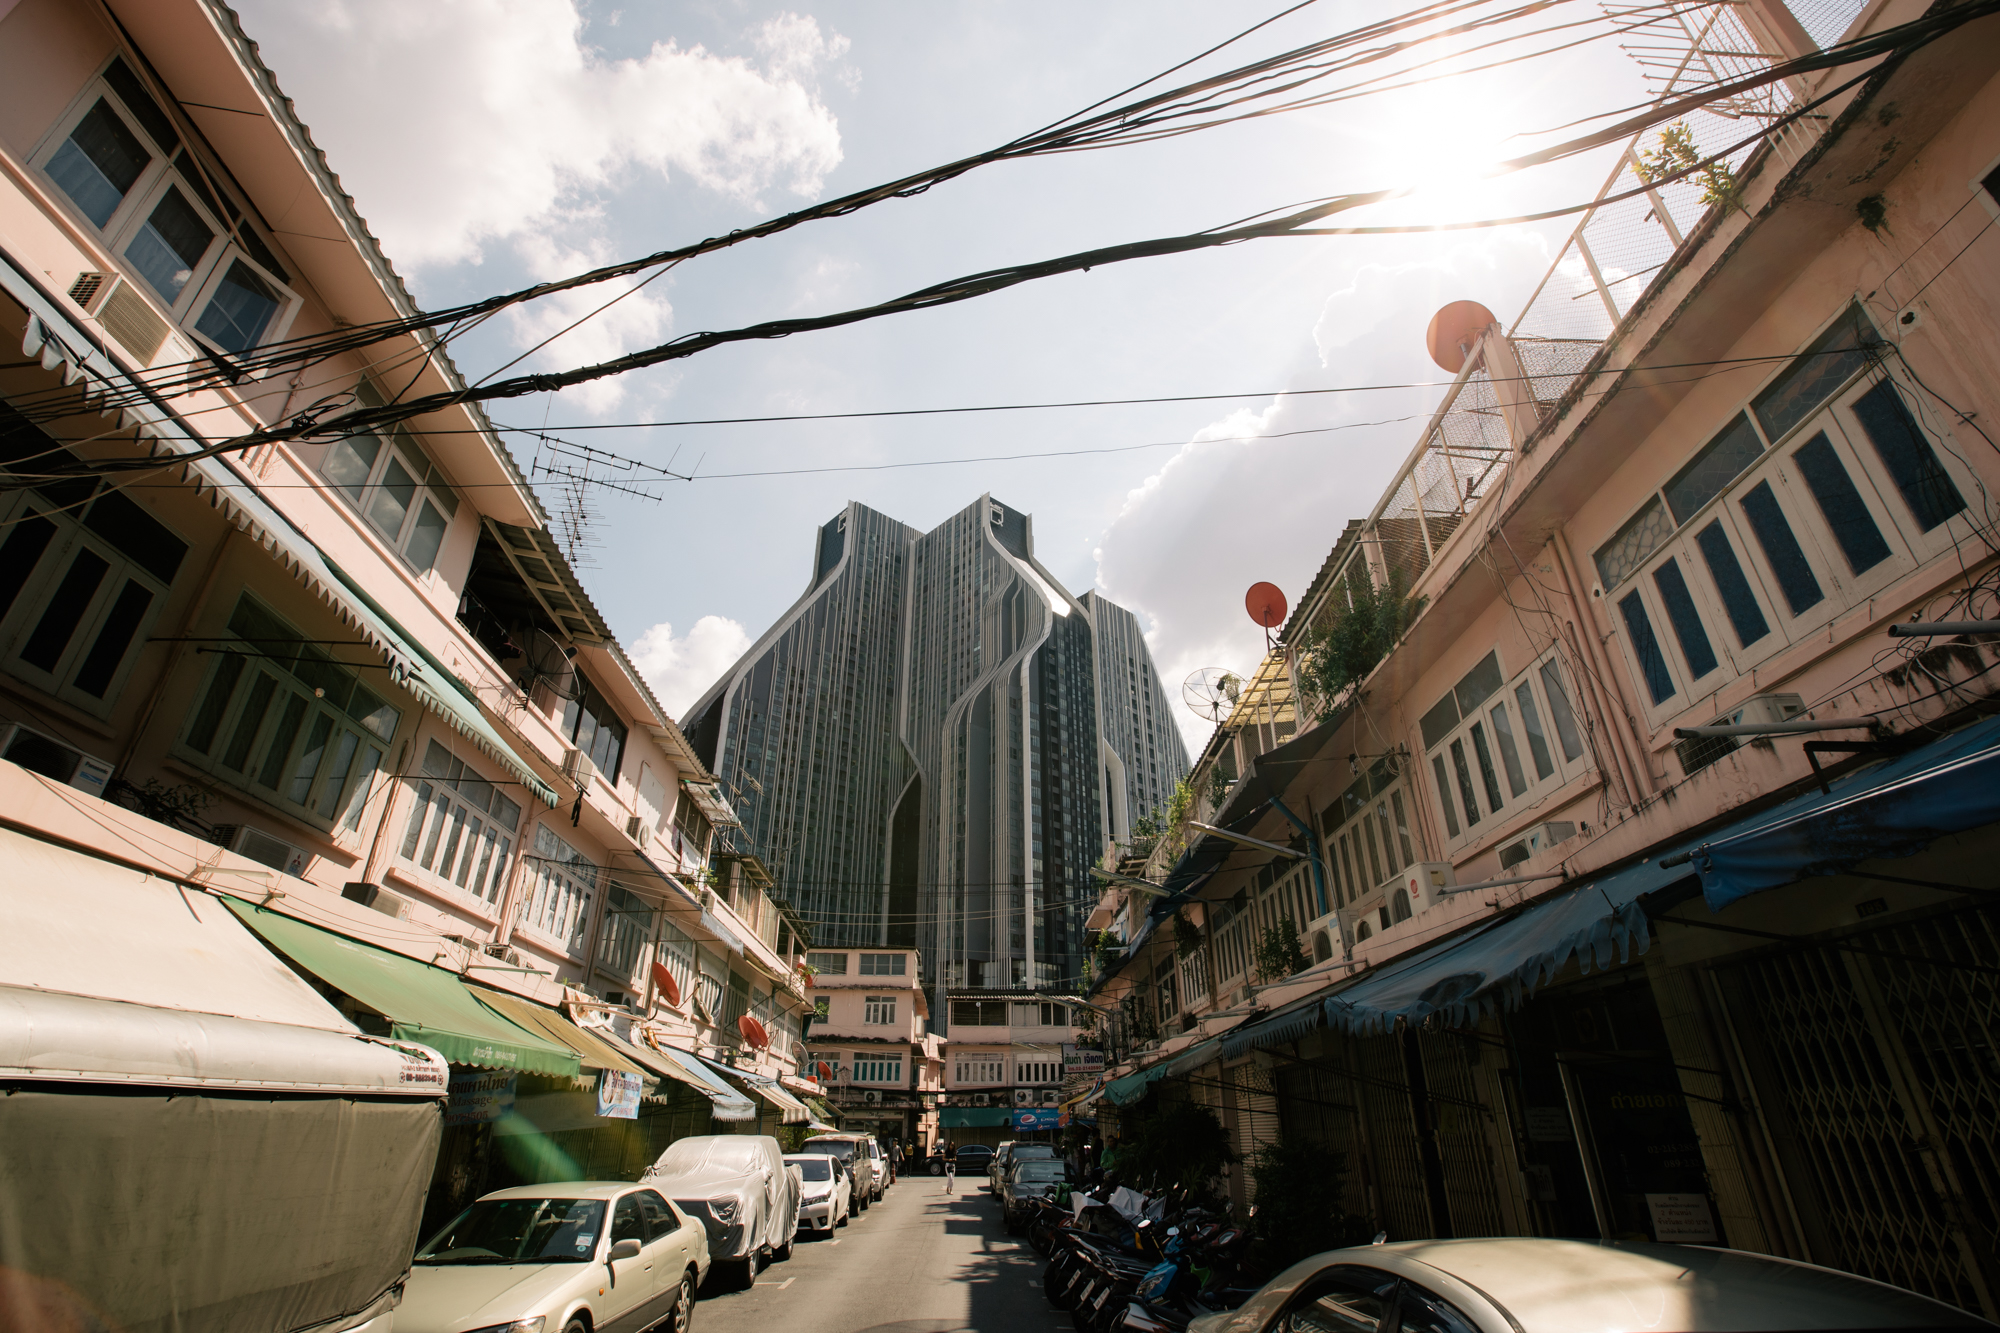 Photo of a street in Thailand with buildings on both sides by Imagine Thailand